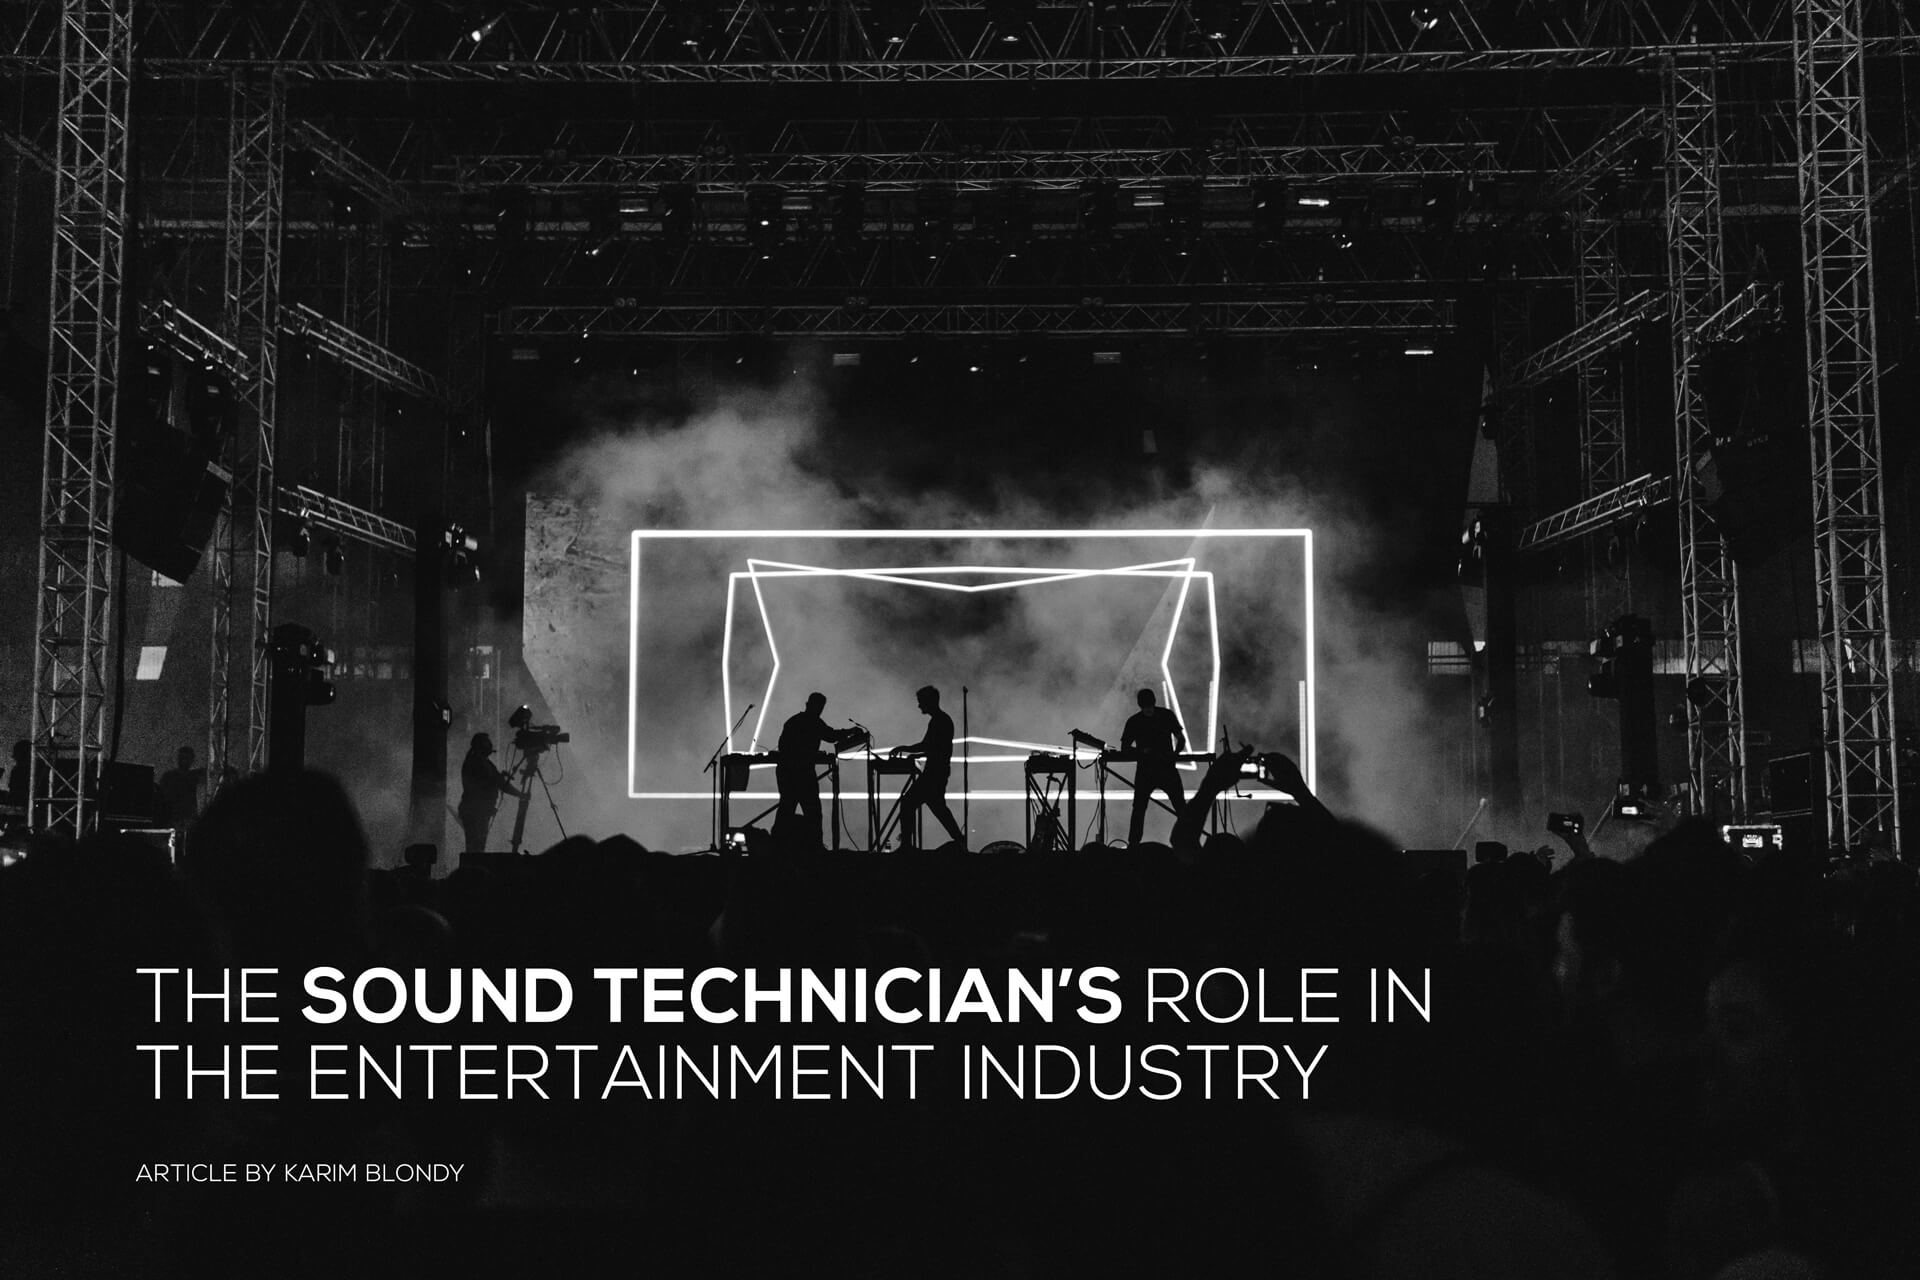 The sound technician's role in the entertainment industry